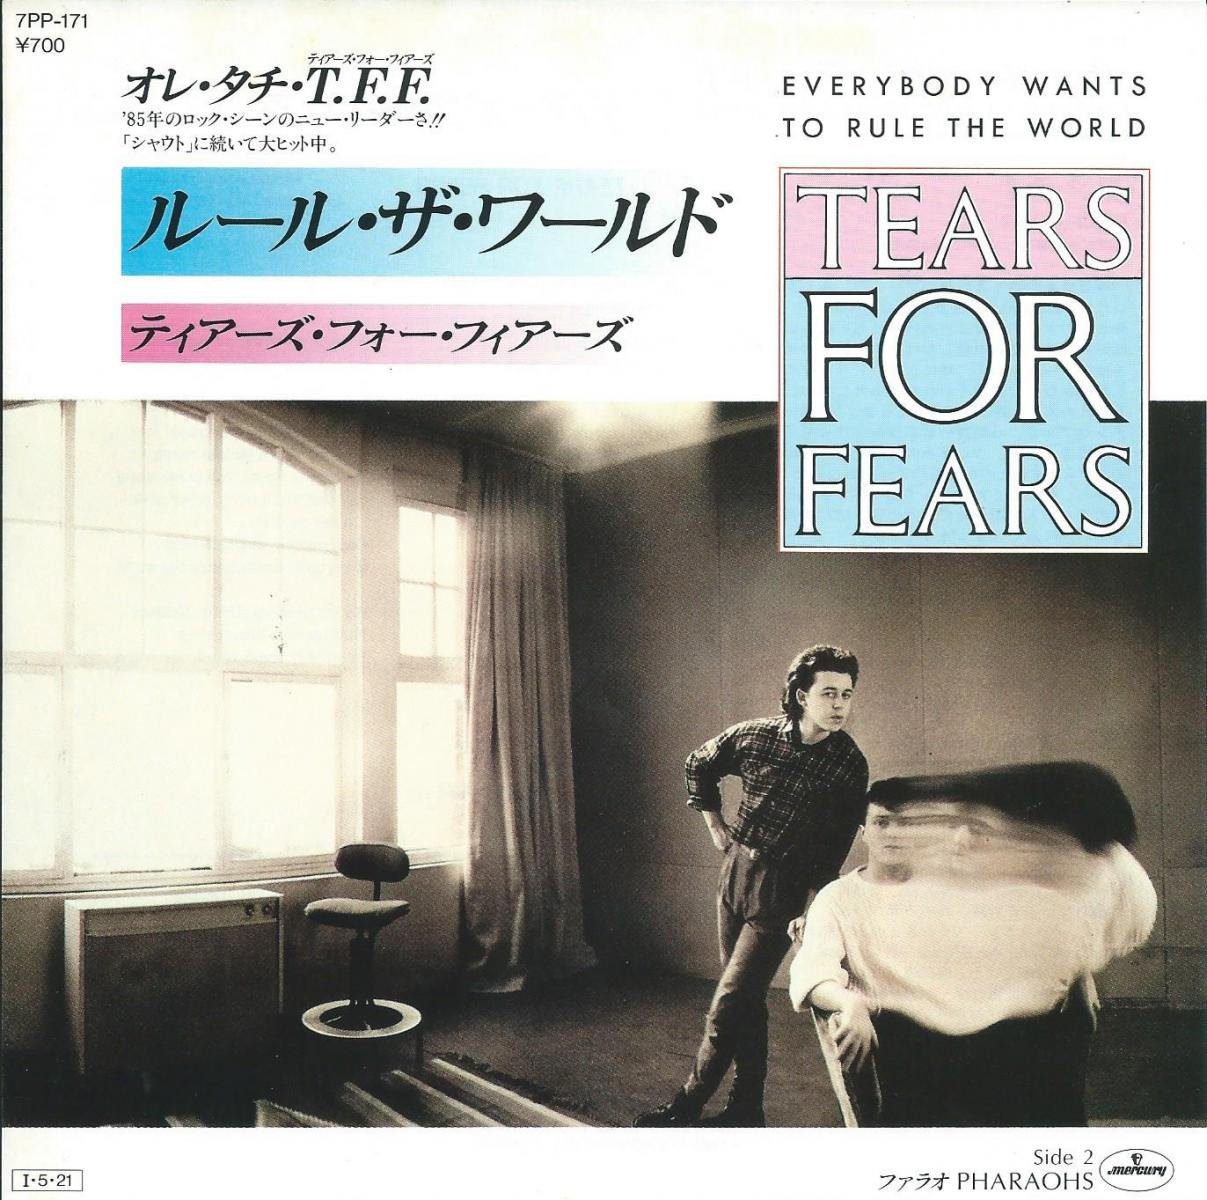 TEARS FOR FEARS ティアーズ・フォー・フィアーズ / ルール・ザ・ワールド EVERYBODY WANTS TO RULE THE WORLD  (7